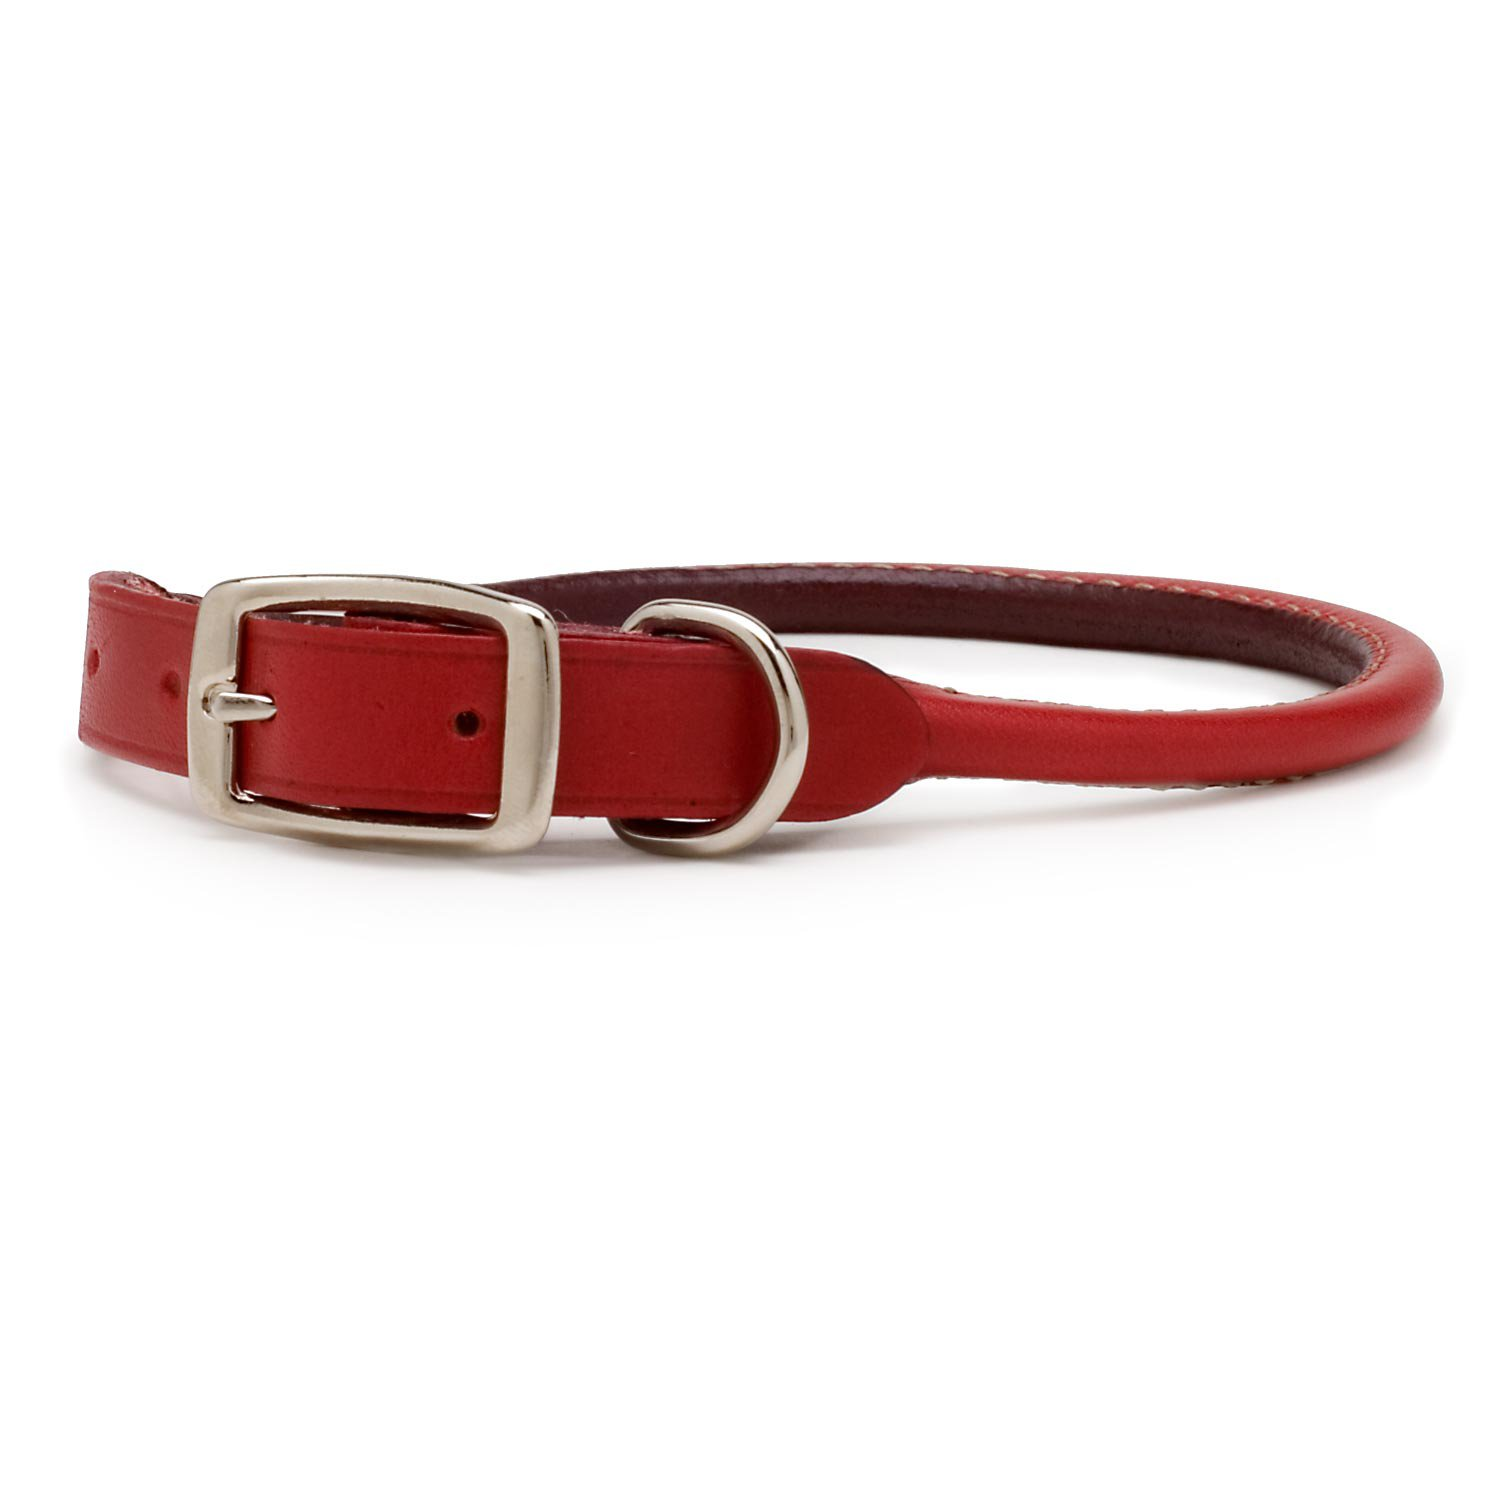 "Petco Rolled Leather 3/4"" Dog Collar in Red"